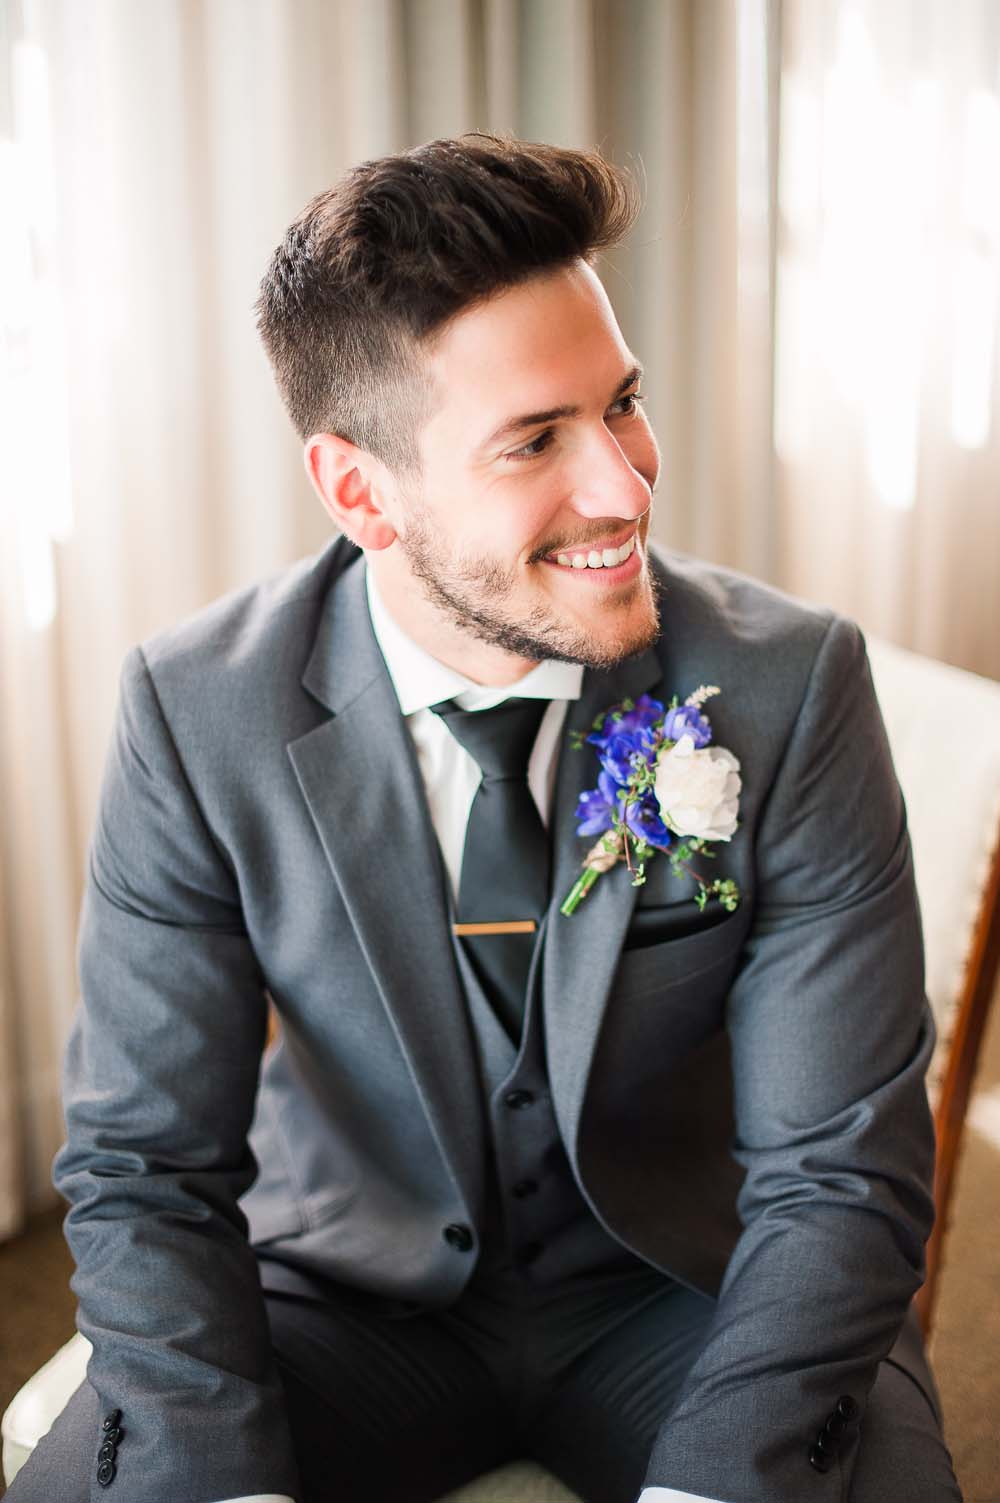 An Ultra Violet-Inspired Styled Shoot In Quebec - Groom